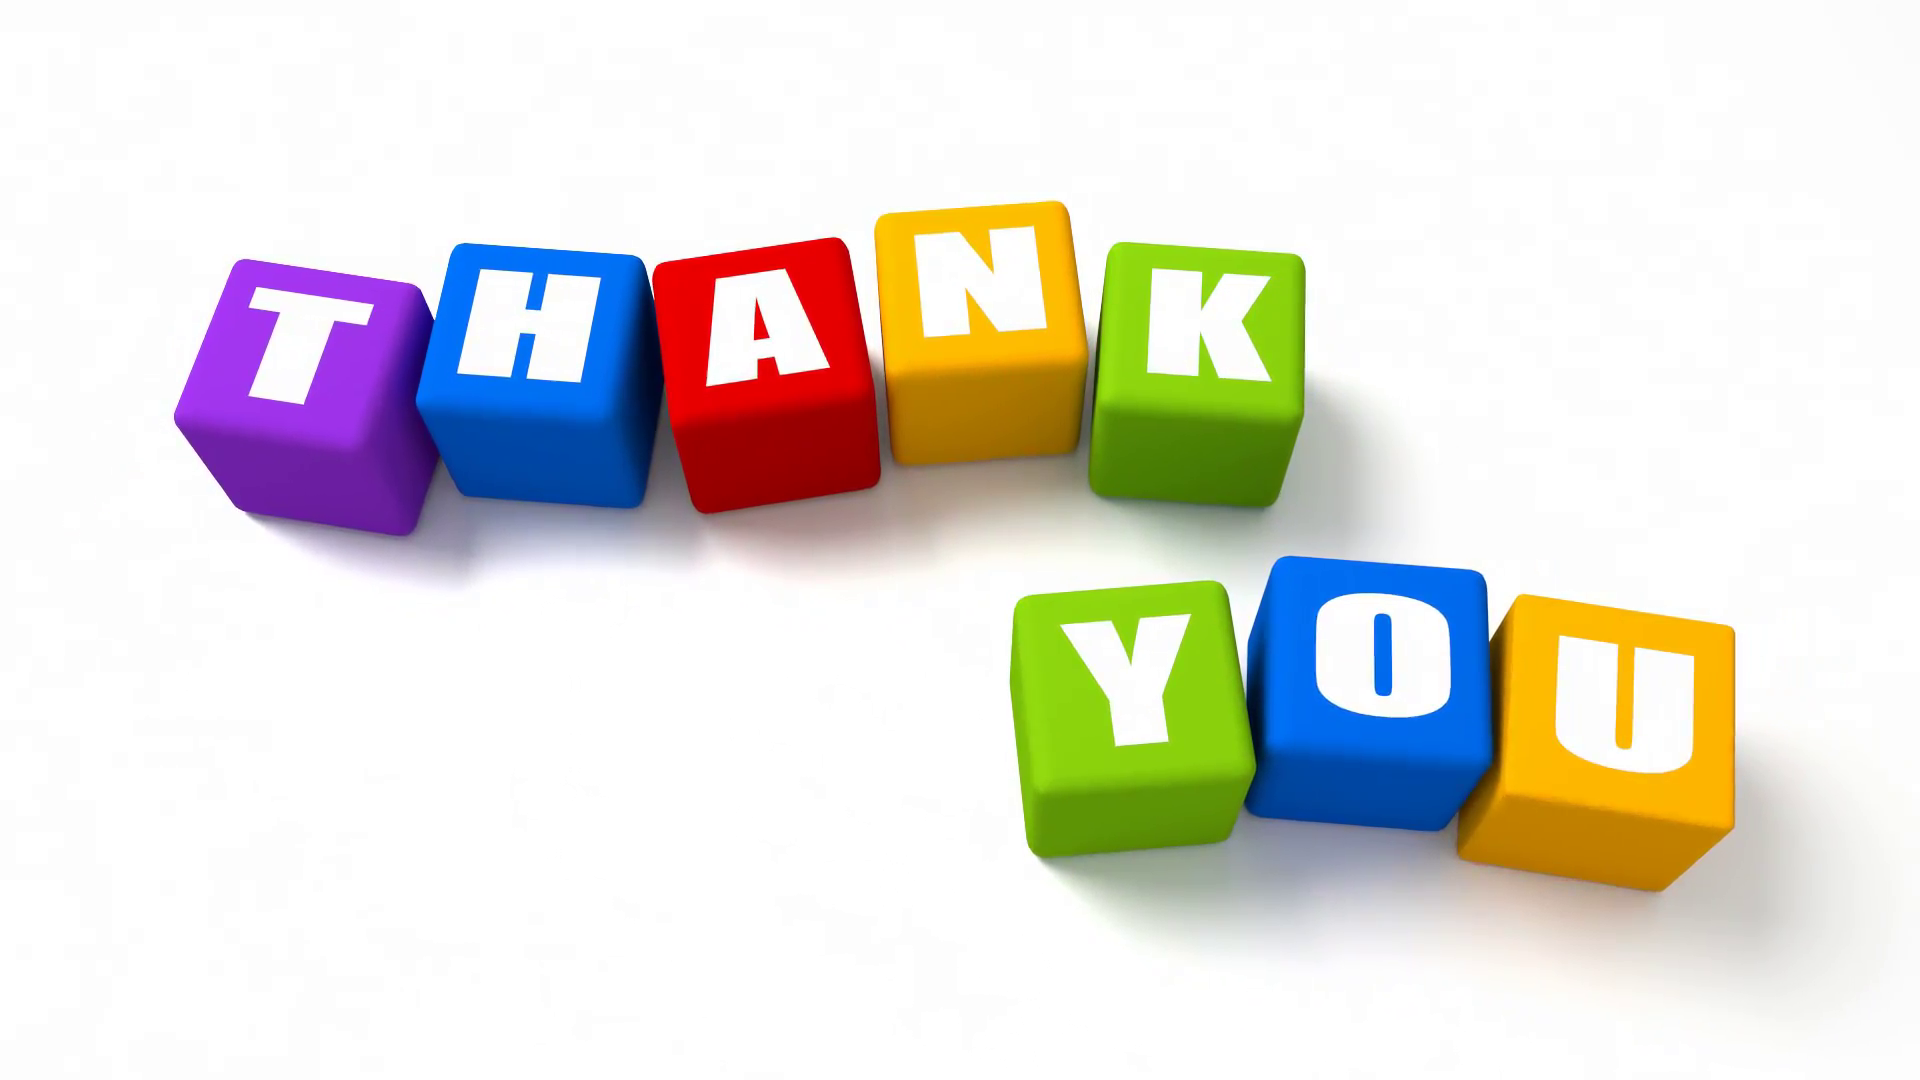 Thank You Colored Cubes Text Animation Motion Background - Videoblocks